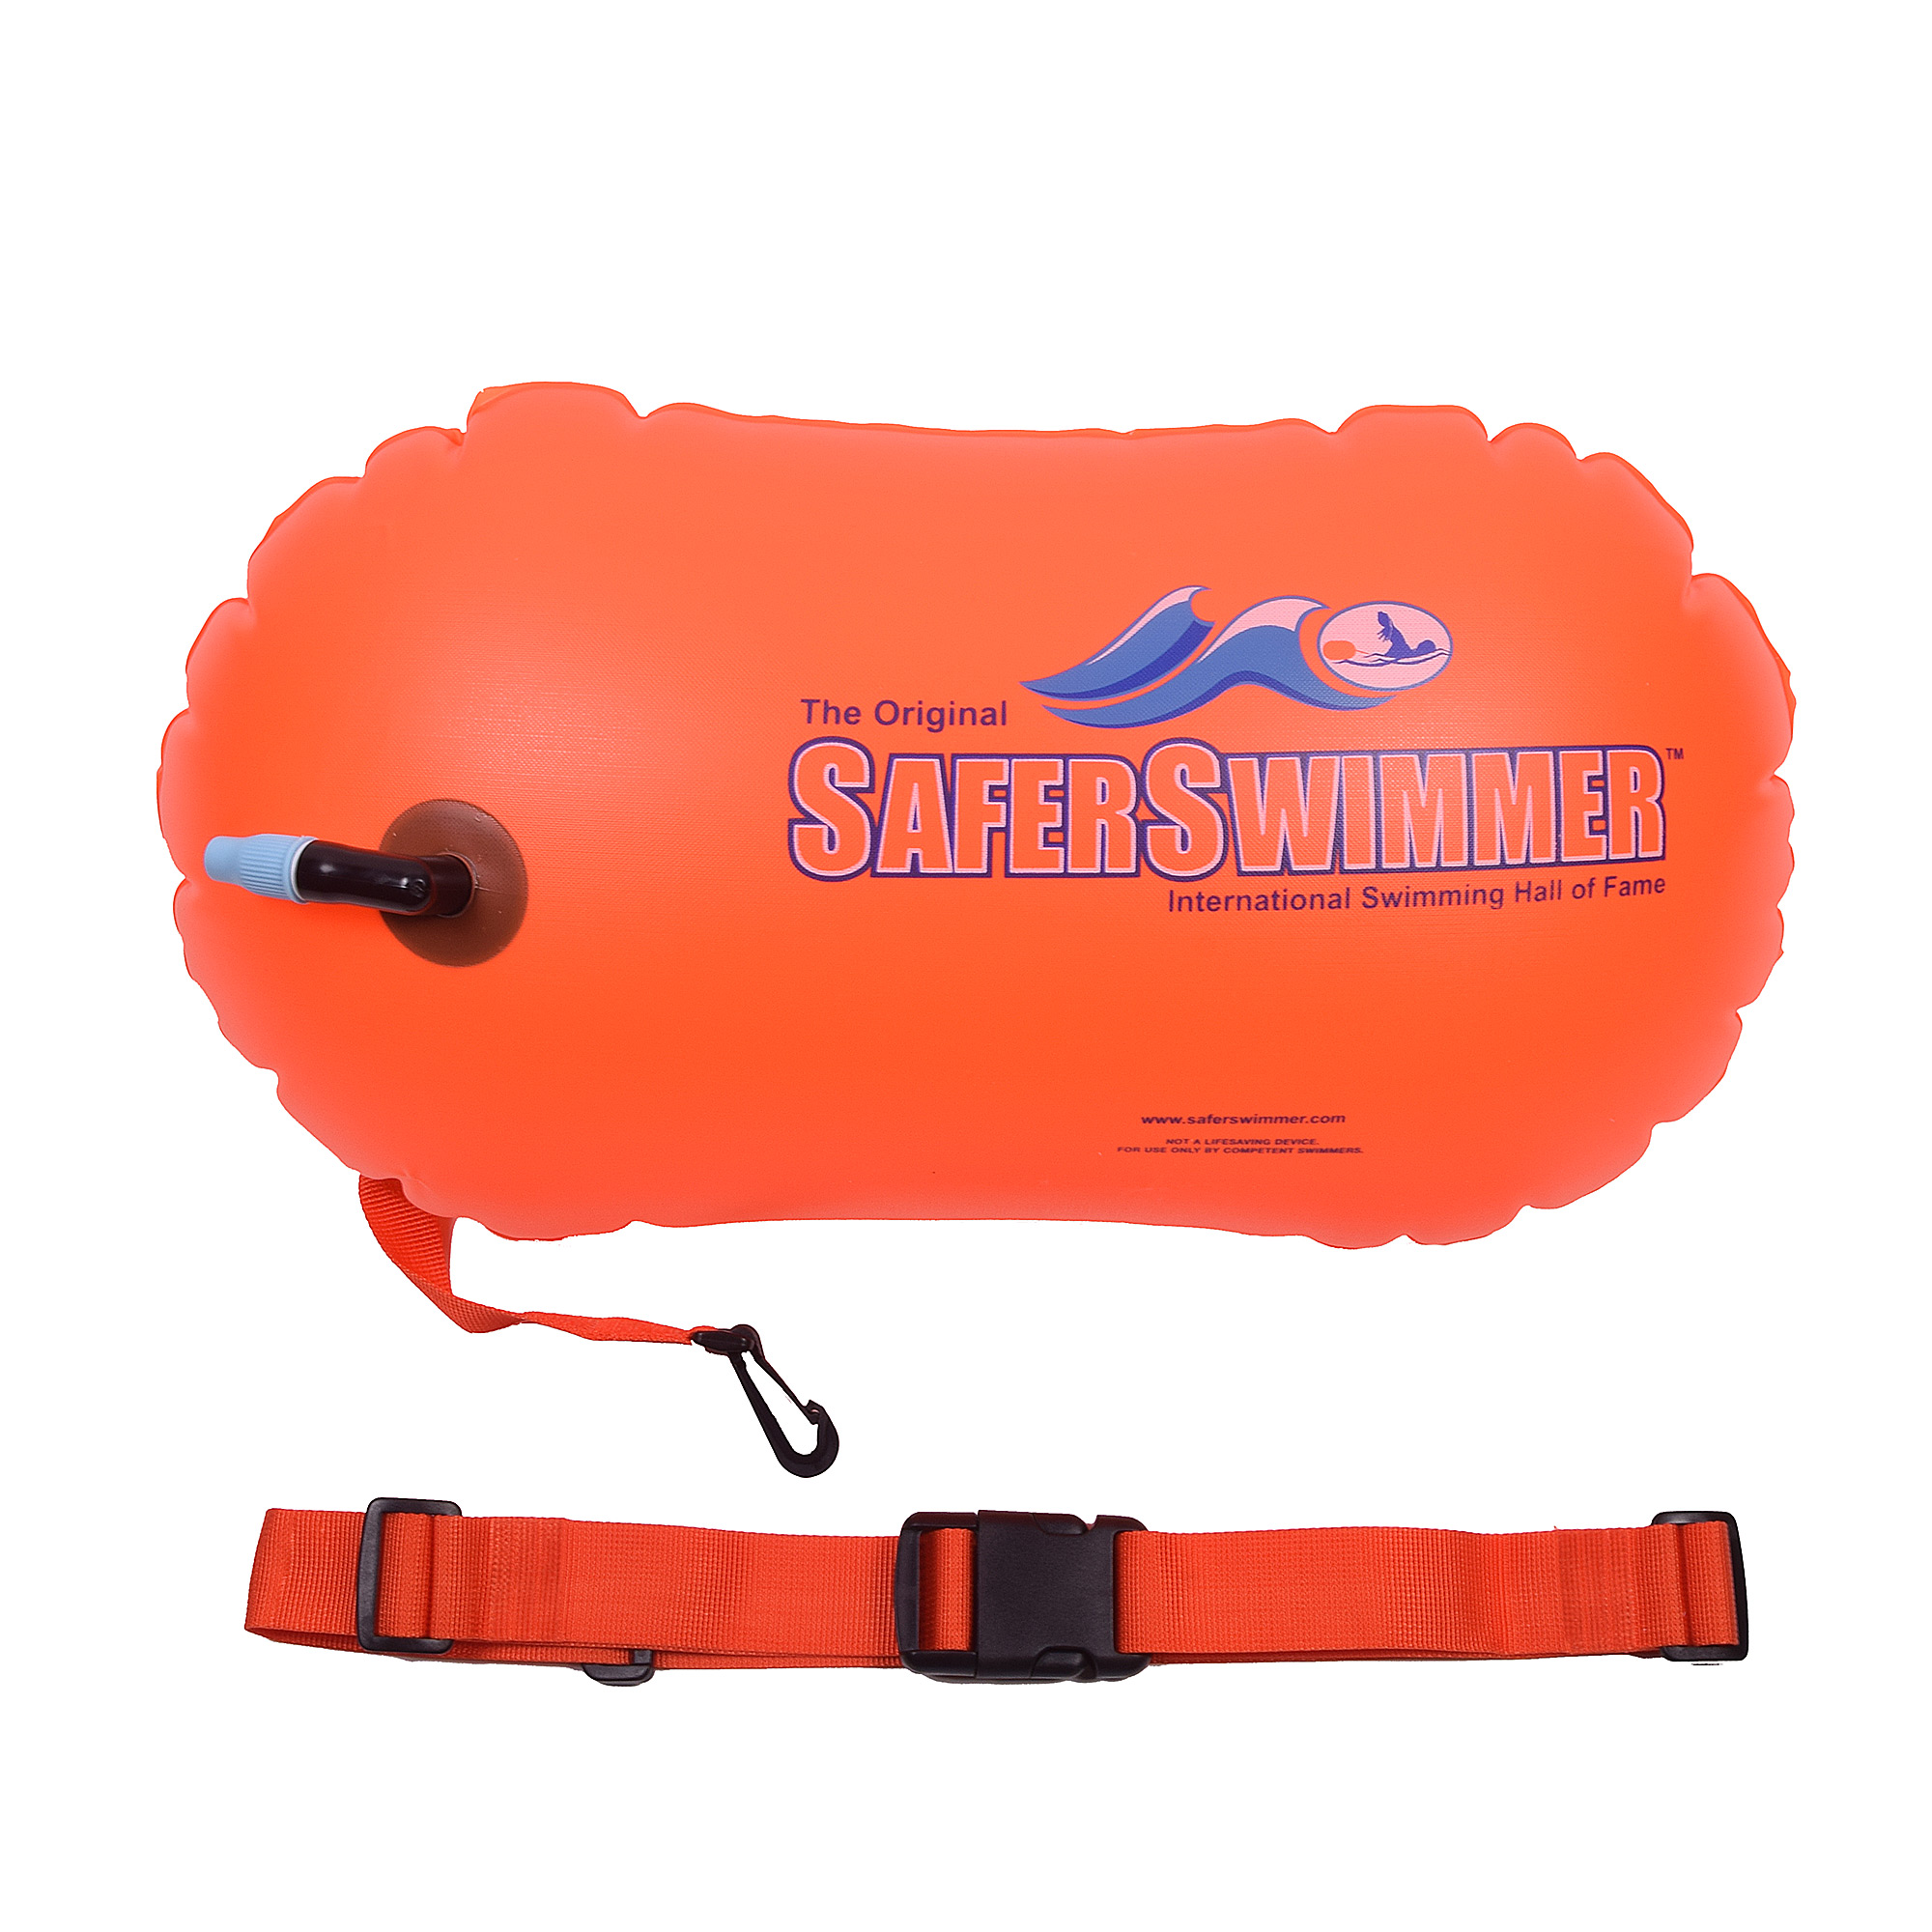 ISHOF SaferSwimmer PVC Safety Swimming Bouy With Dry Bag Storage